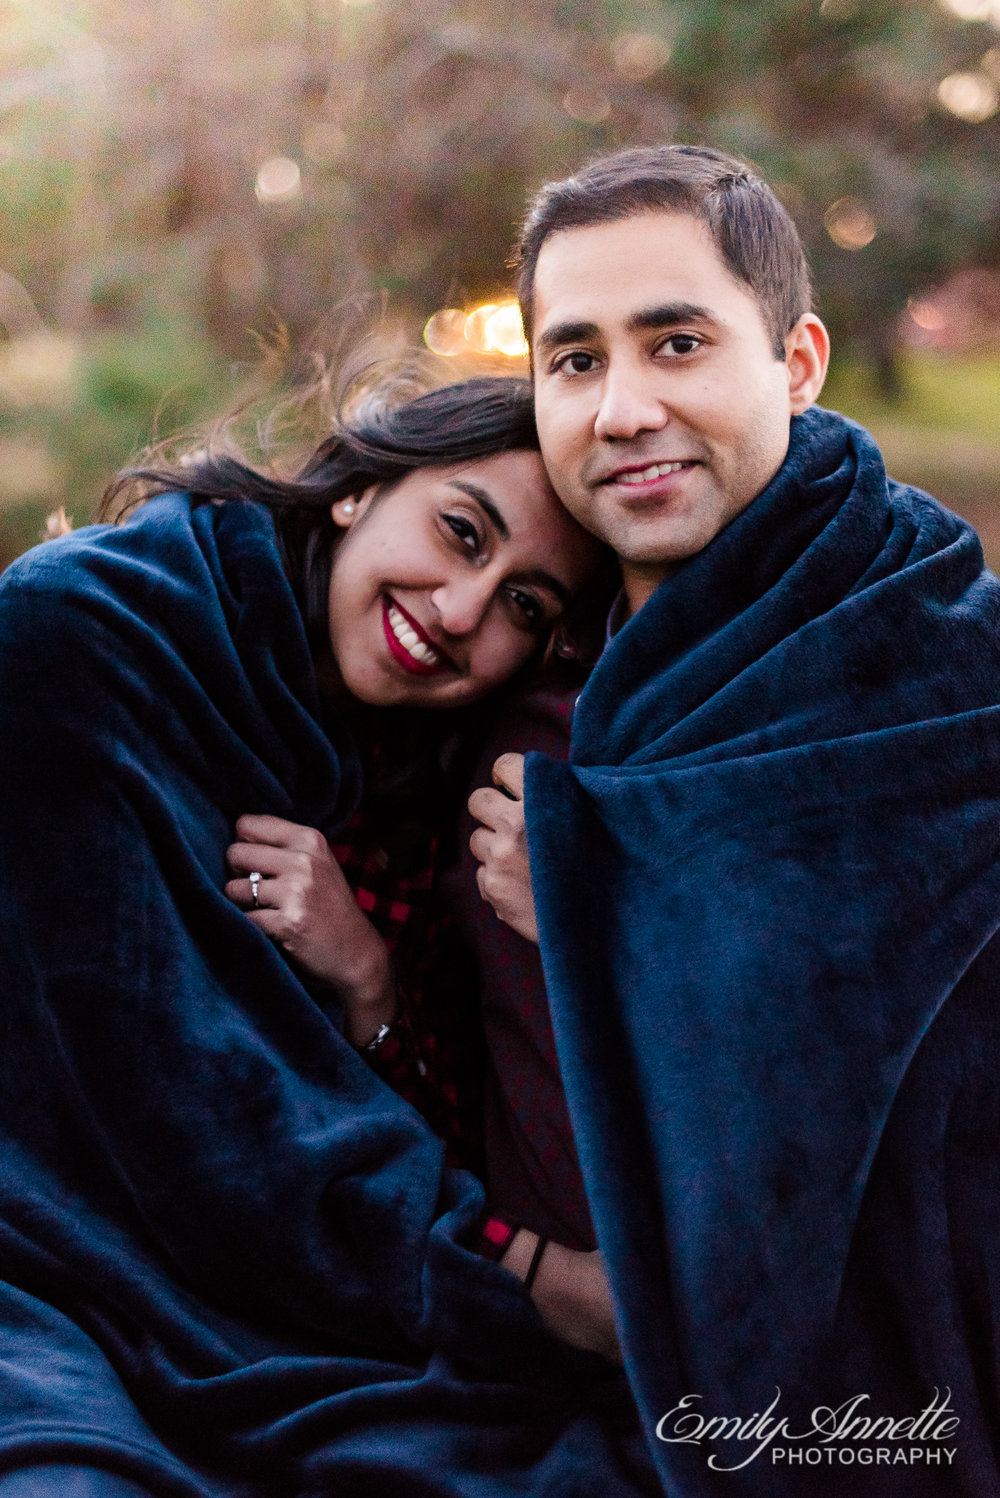 An engaged couple snuggles while wrapped in a blanket sitting on a picnic table at Gravelly Point Park in Arlington Virginia for an engagement session